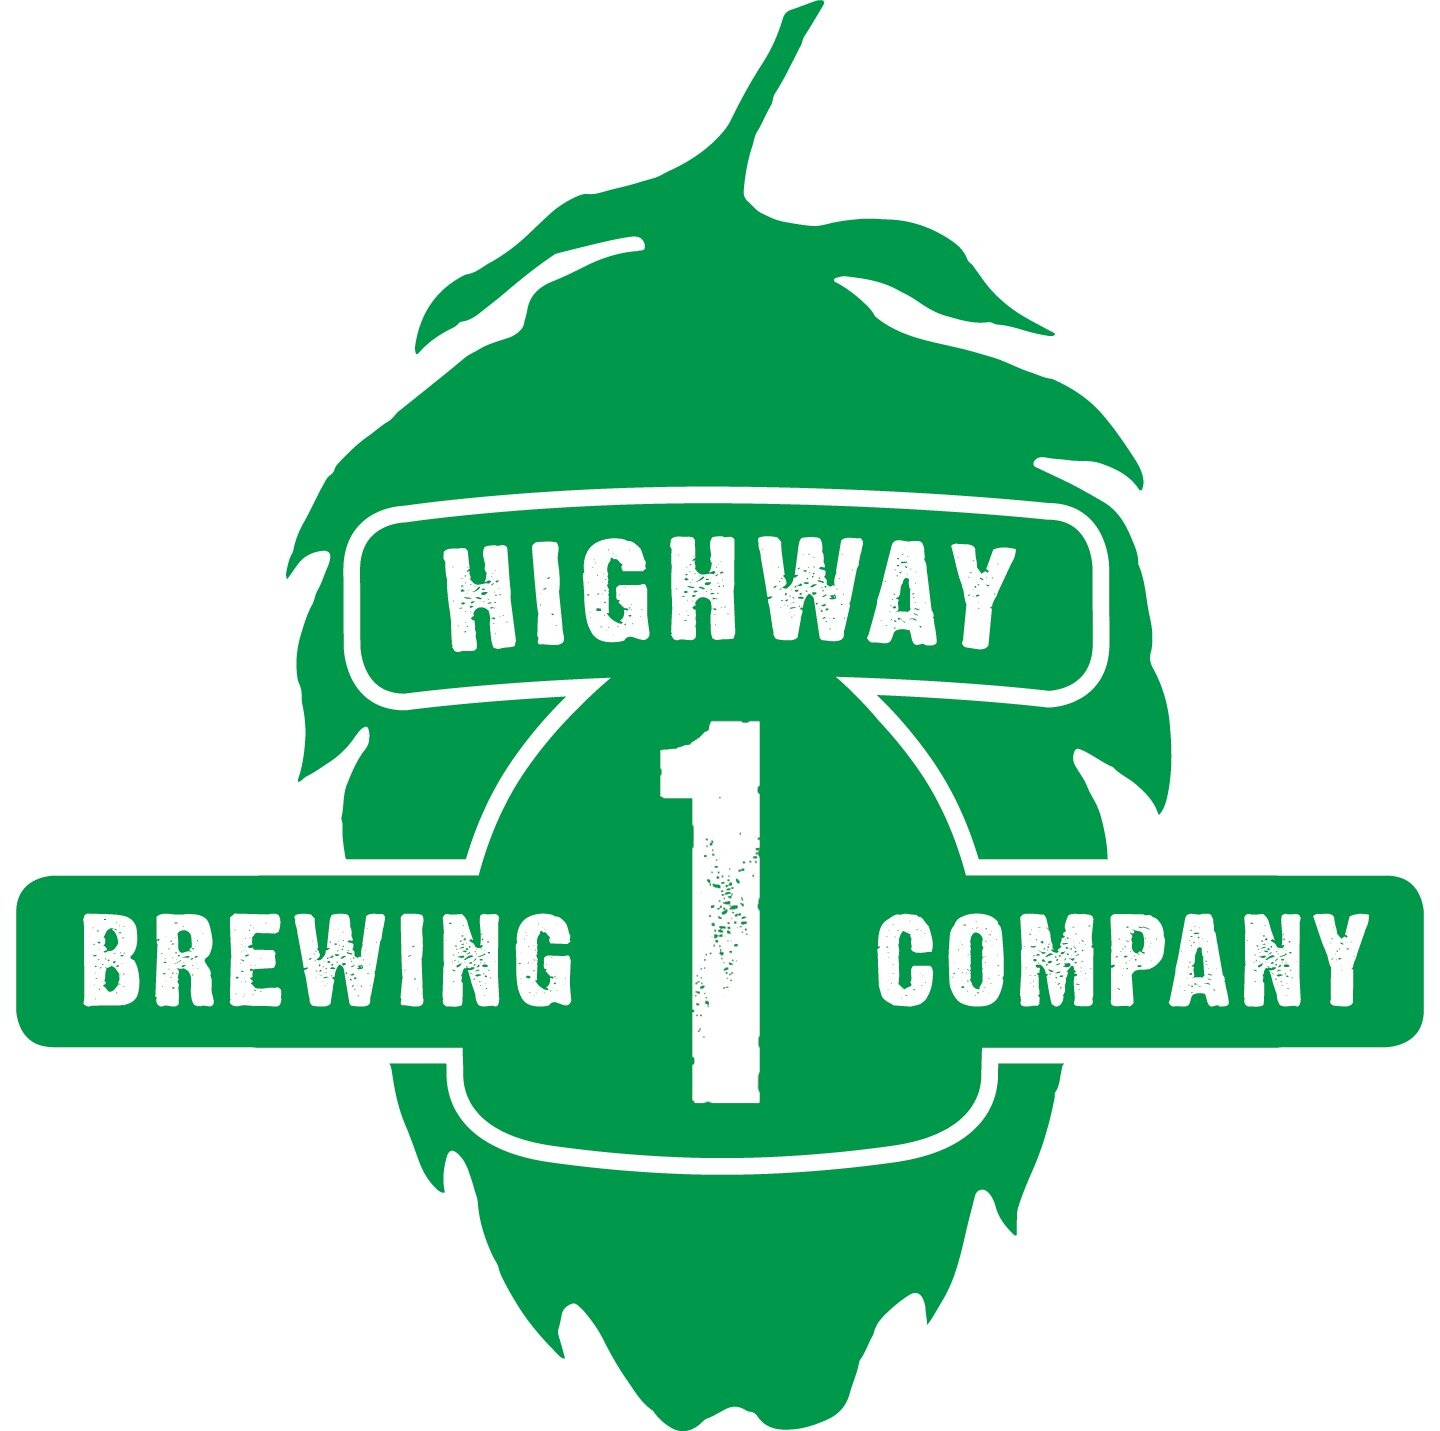 Highway 1 Brewing Company